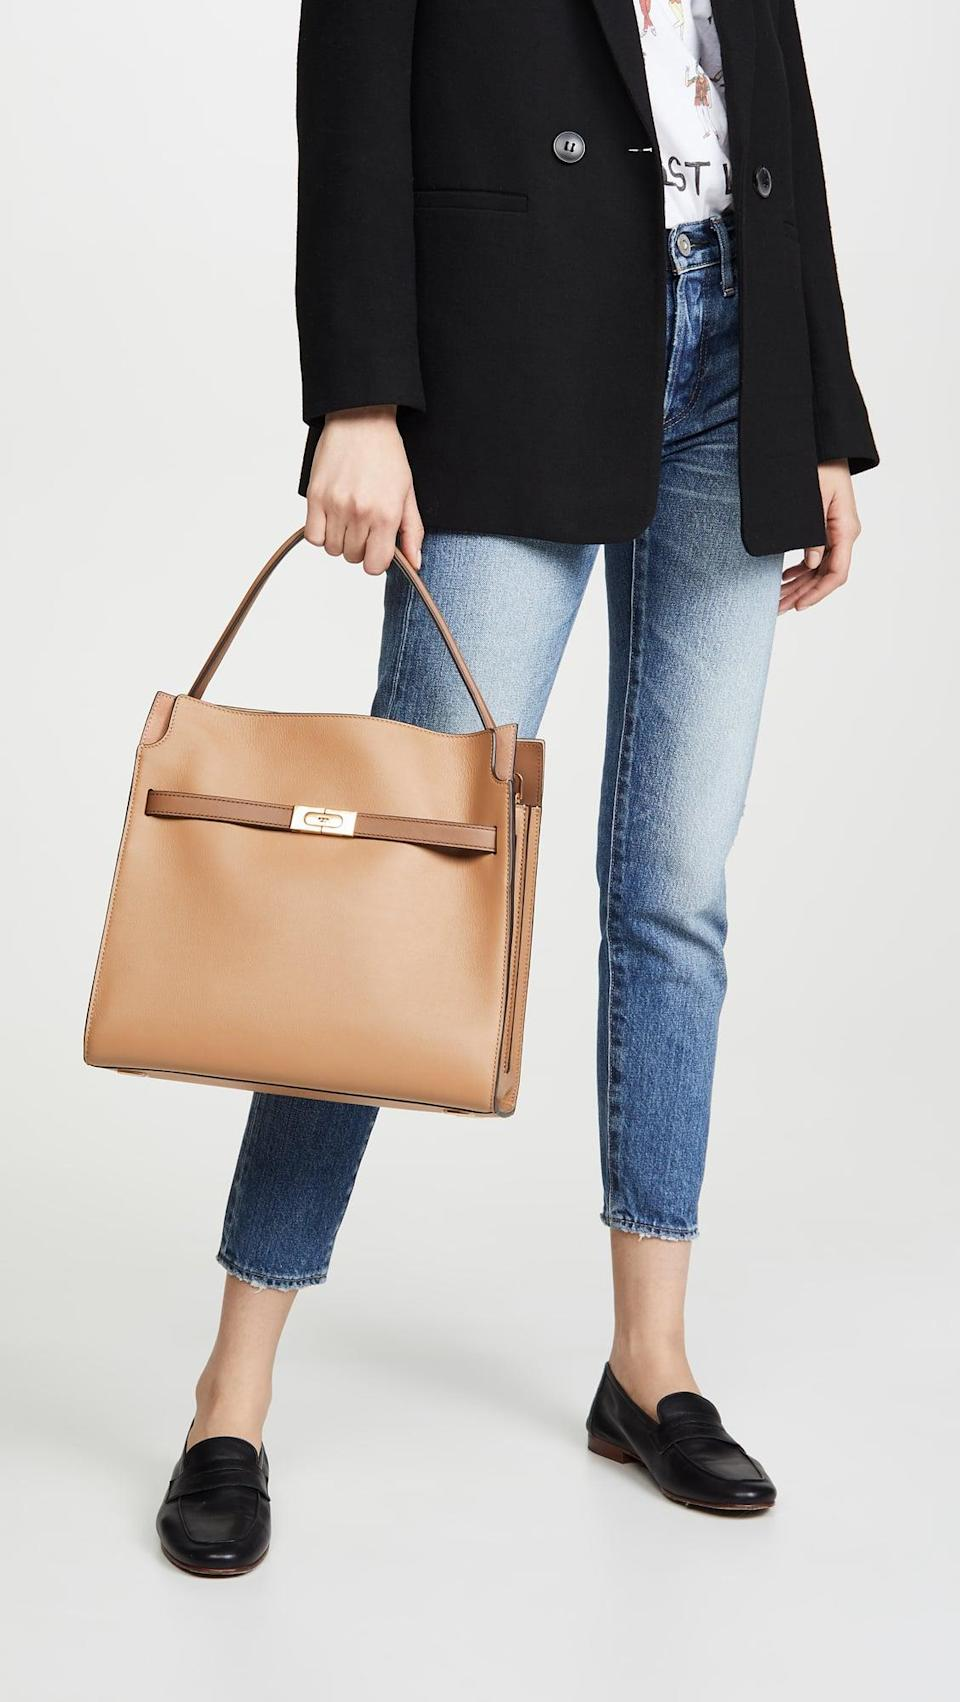 <p>This chic <span>Tory Burch Lee Radziwill Double Bag</span> ($998) will make your outfit look more polished. Plus, you can fit your laptop inside, and nobody will be the wiser.</p>